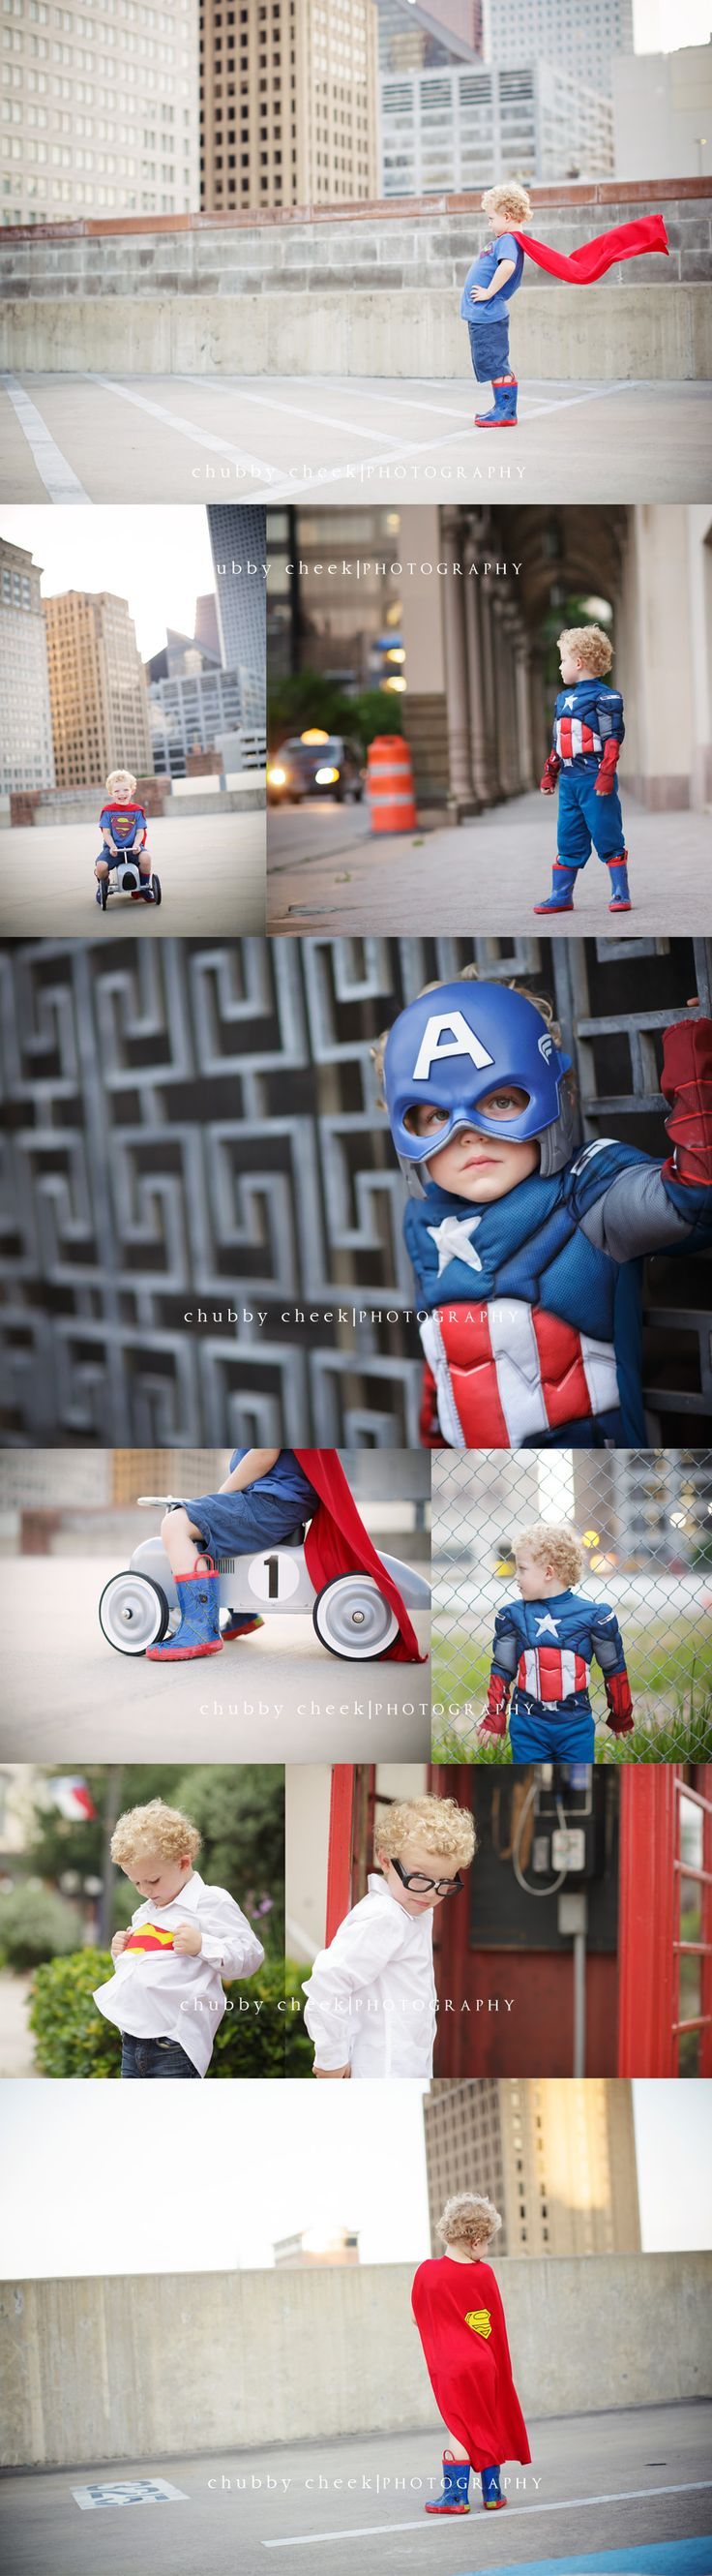 Superhero Photo Shoot part2!! Chubby Cheek Photography Houston, TX Natural Light Photographer